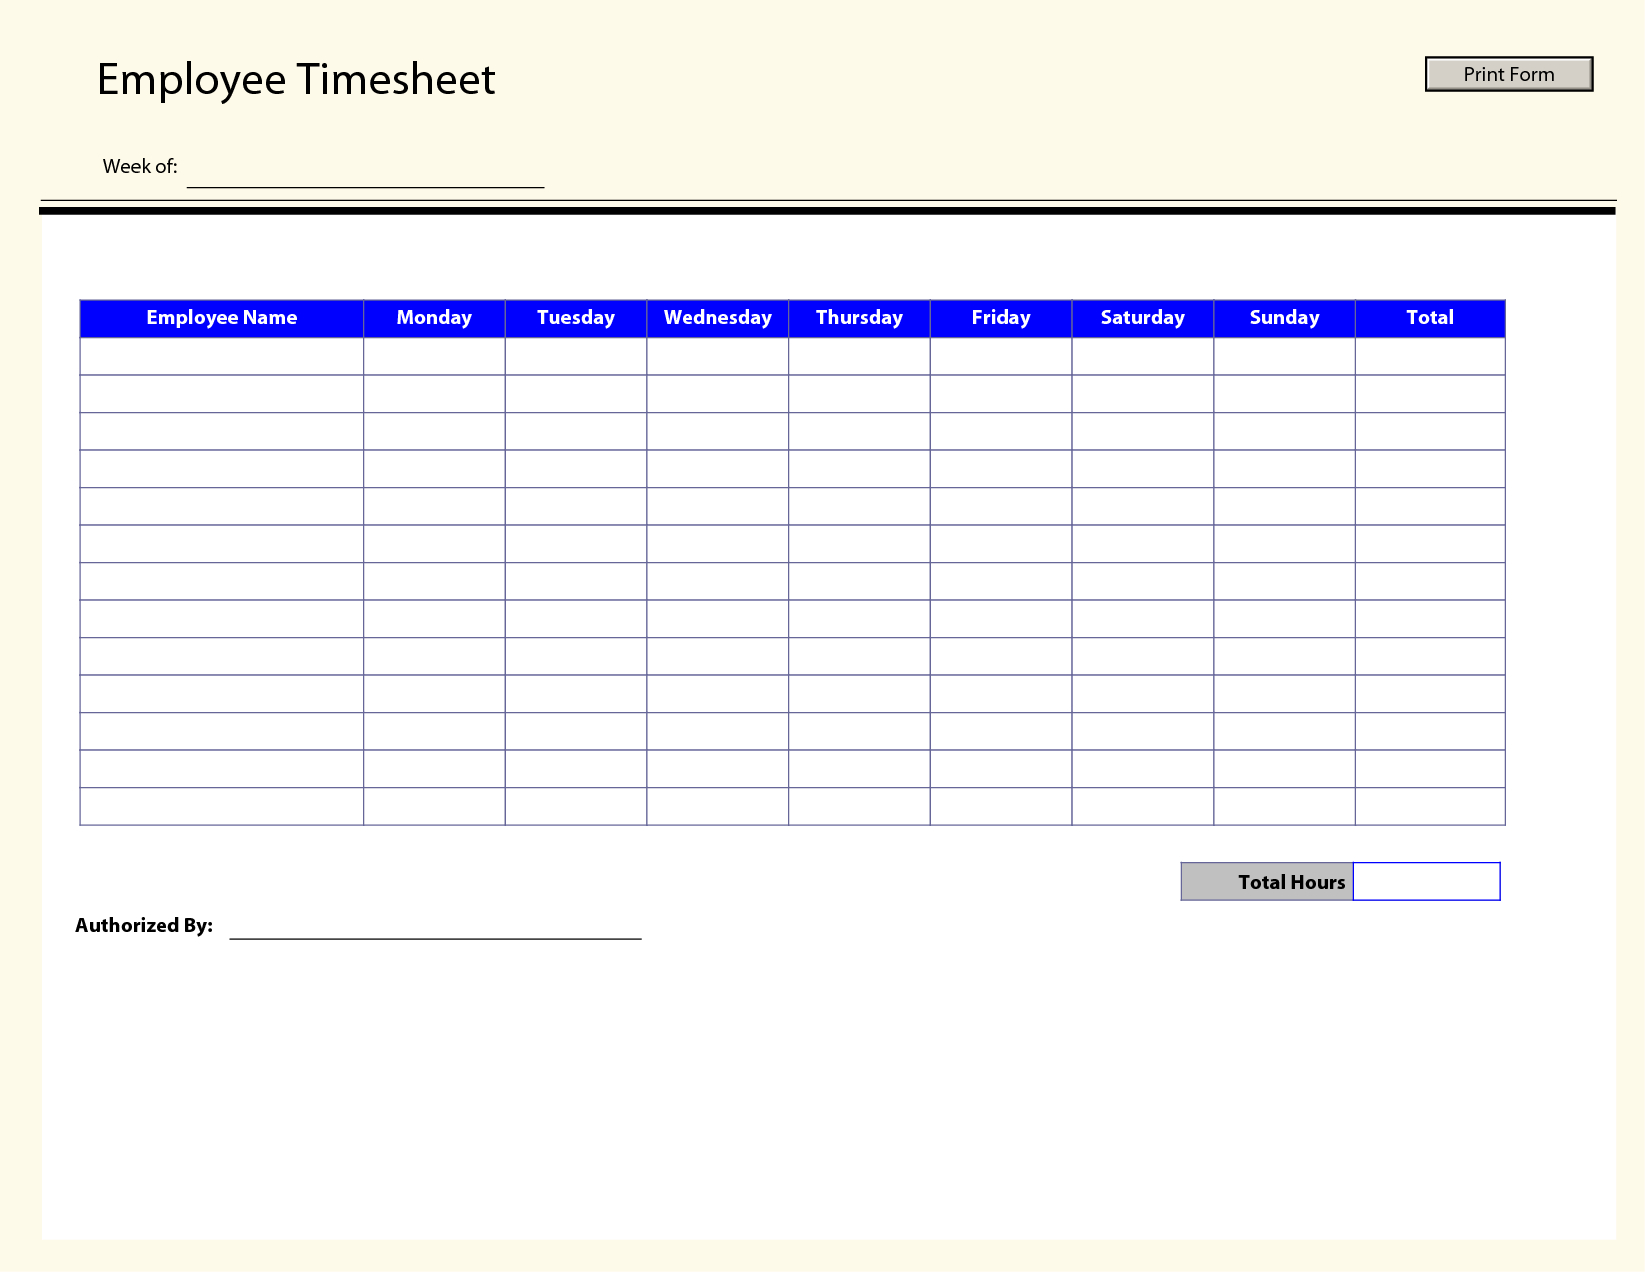 Printable Time Sheets | Free Printable Employee Timesheets Employee - Timesheet Template Free Printable